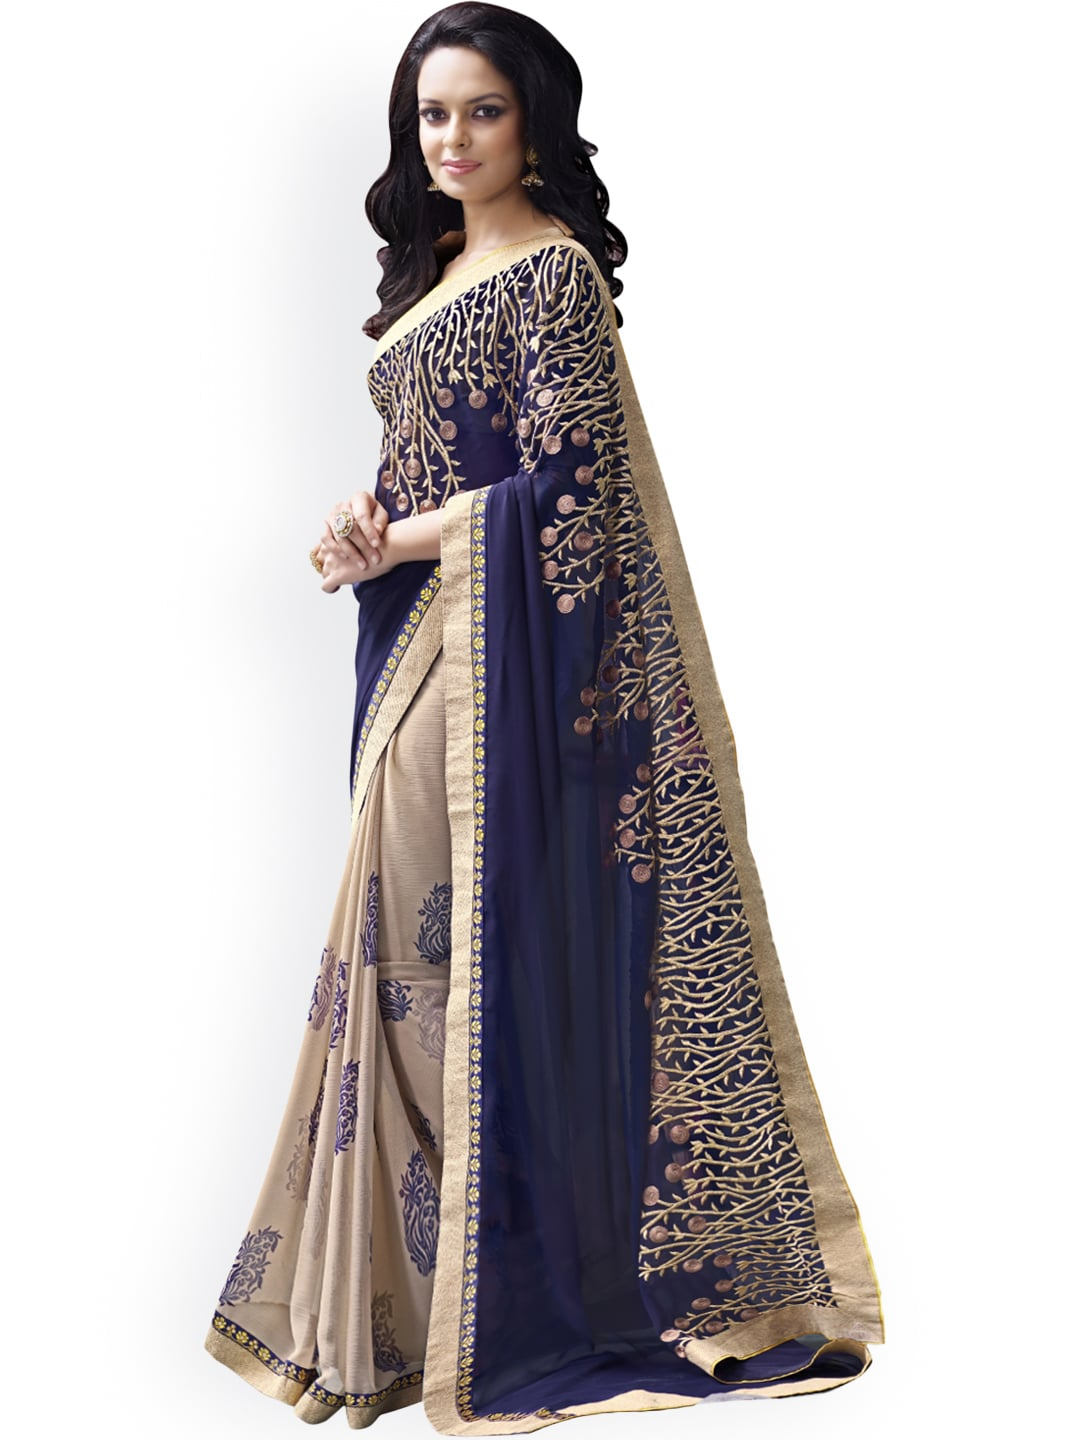 Fashion saree online fashion today for Luxury fashion online